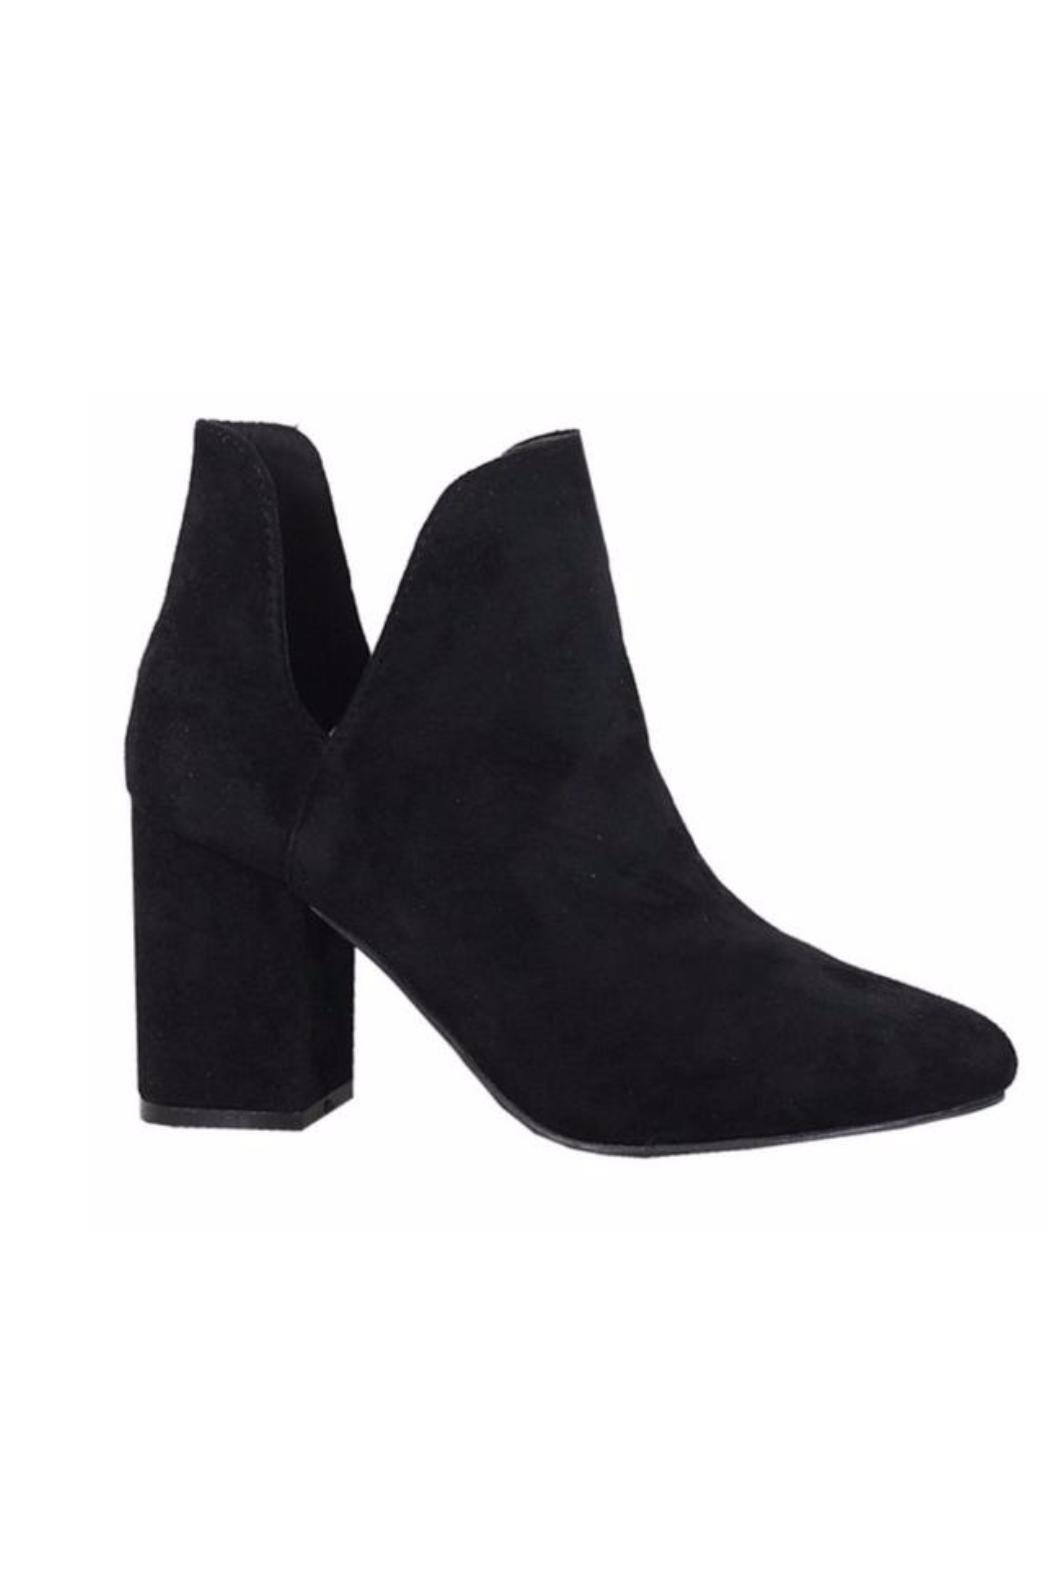 M&Z Sky Shoes Pointed Toe Booties - Main Image